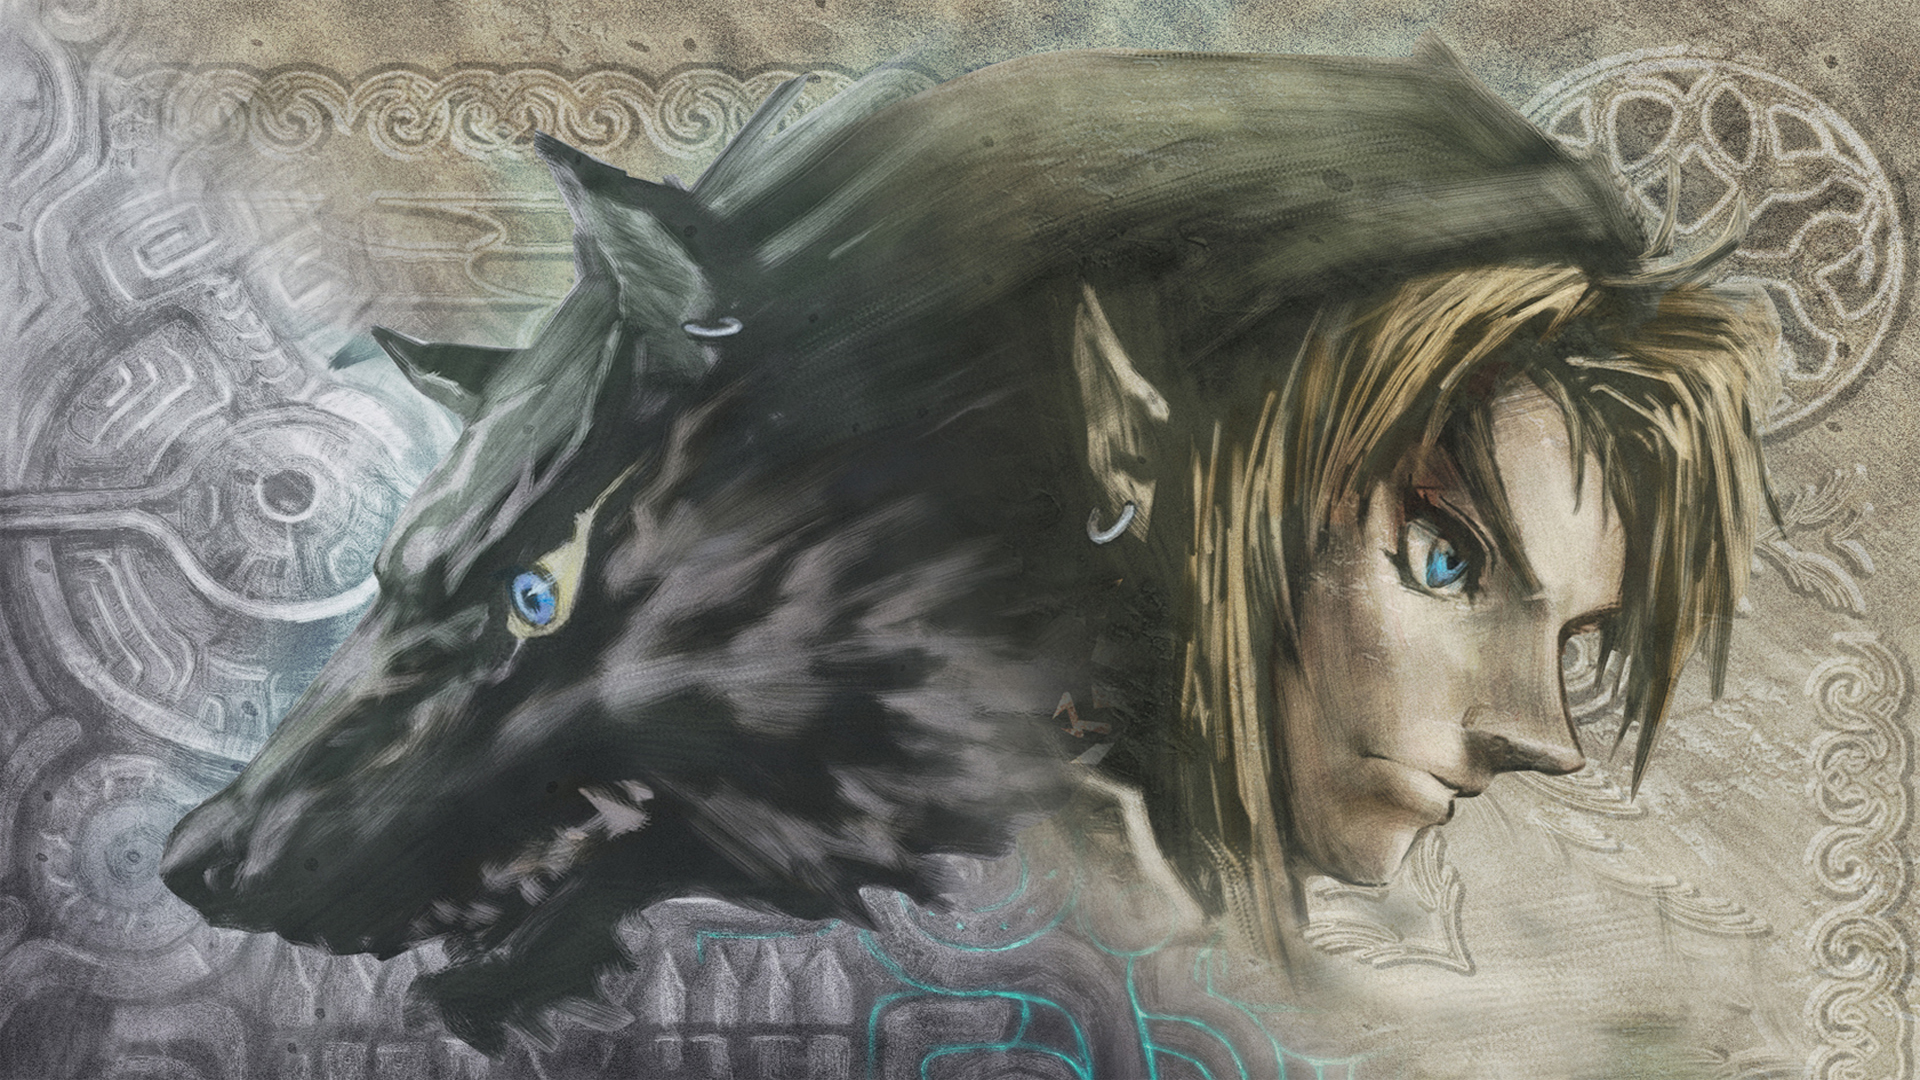 Link Wolf Wallpaper 1920x1080 Link Wolf The Legend Of Zelda 1920x1080